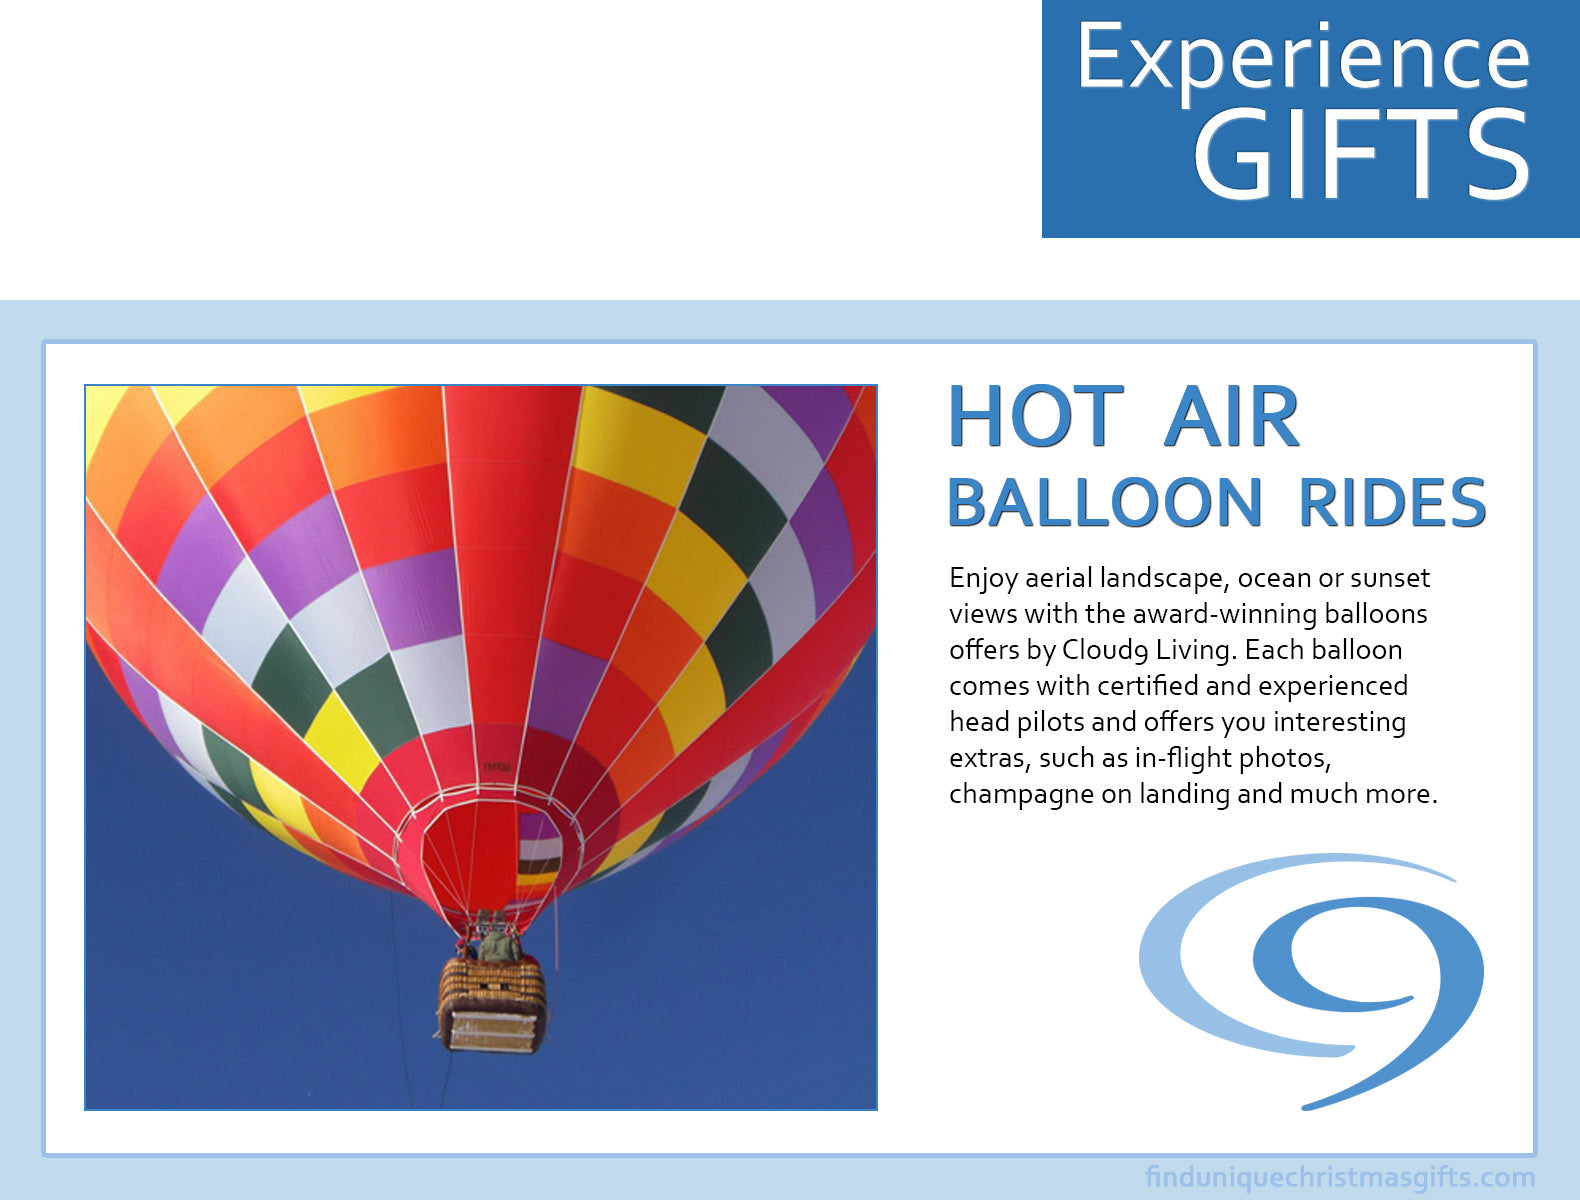 Hot Air Balloon Rides - Give a Shared Experience this Christmas ...